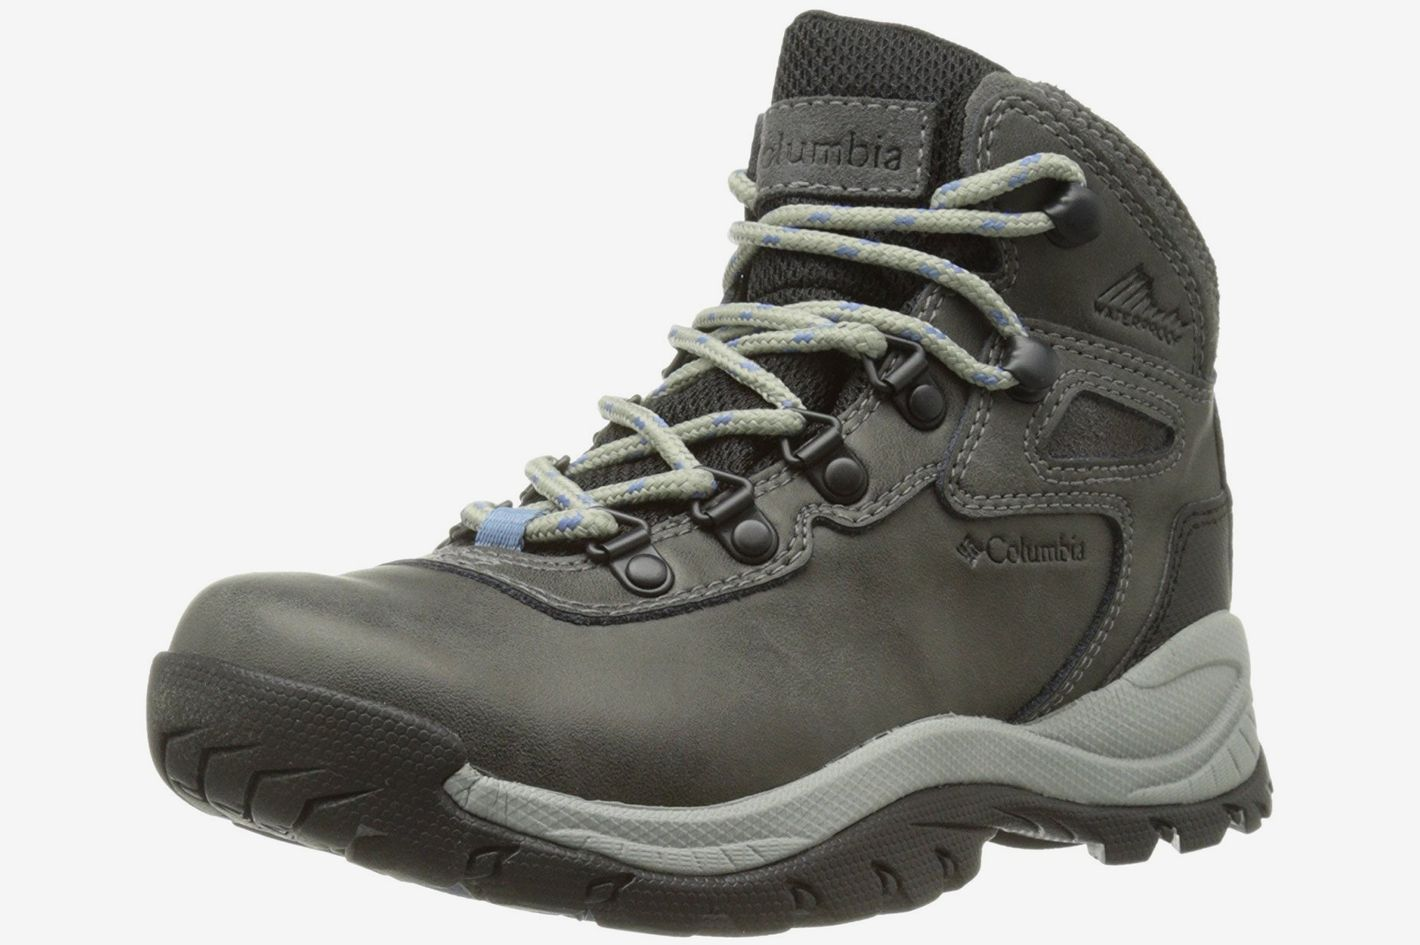 35f87947fd240 13 Best Hiking Boots for Women 2018